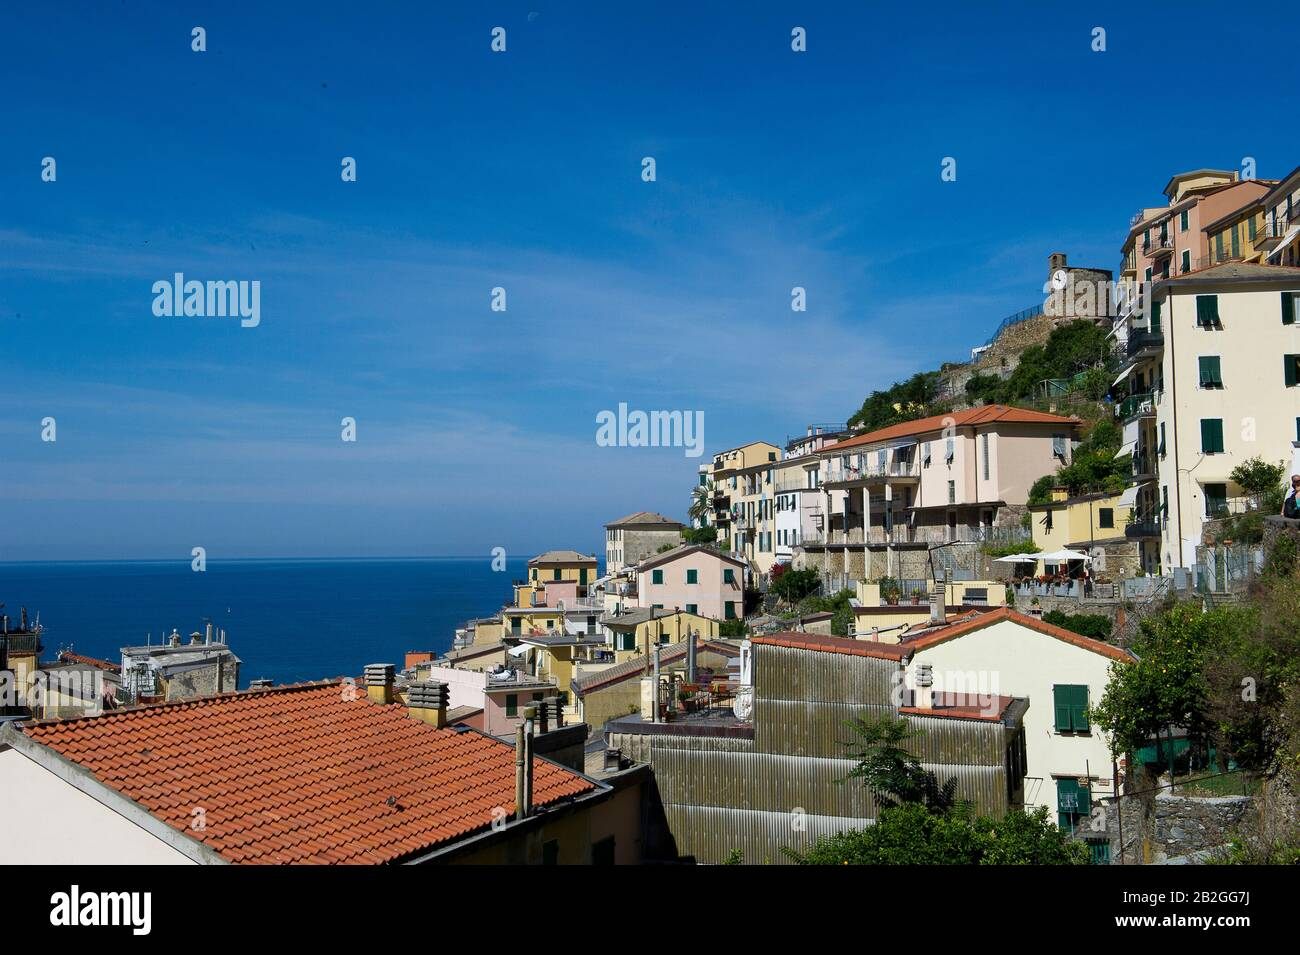 Riomaggiore overlooks the sea in the province of La Spezia, is in the natural park of the Cinque Terre in Liguria, in north-western Italy. It is on the UNESCO World Heritage list Stock Photo